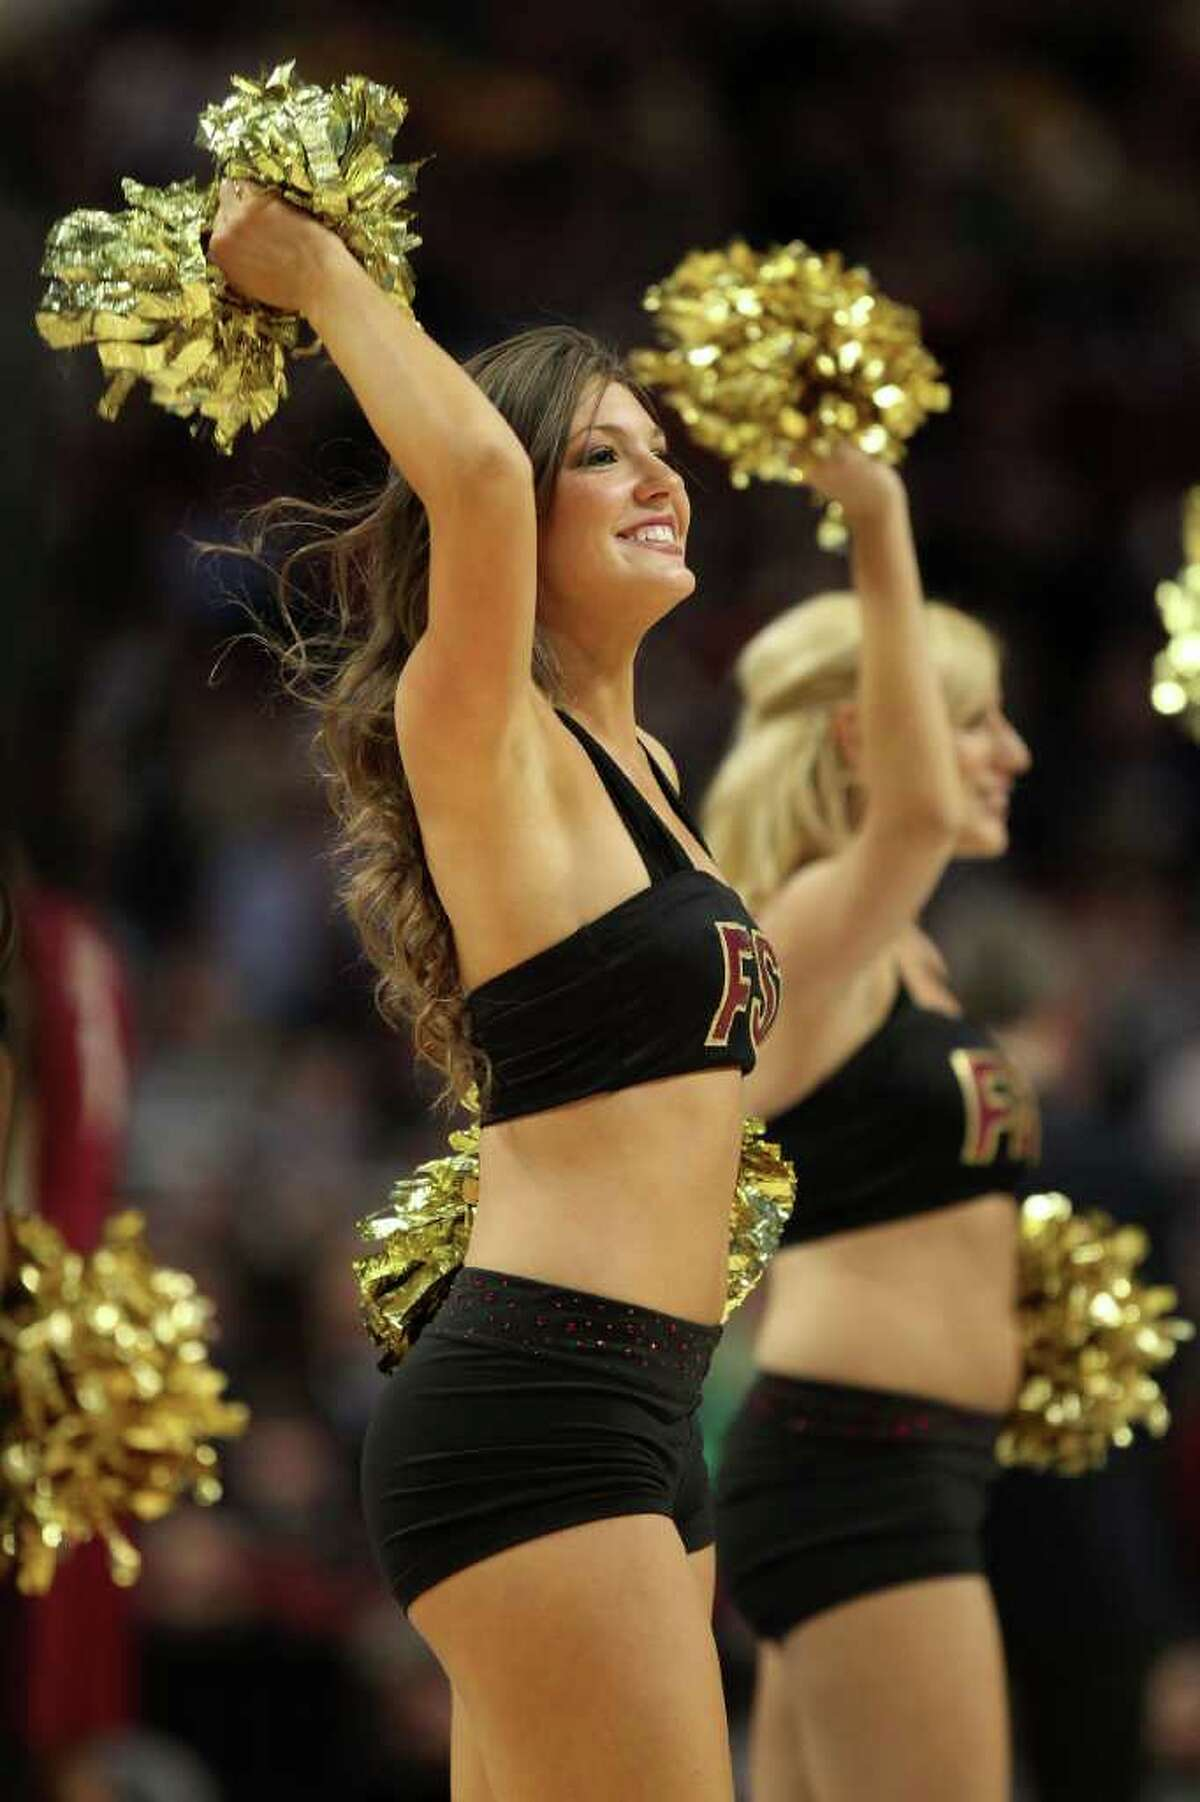 CHICAGO, IL - MARCH 20: The Florida State Seminoles cheerleaders perform in the first half during the third round of the 2011 NCAA men's basketball tournament at the United Center on March 20, 2011 in Chicago, Illinois. (Photo by Jonathan Daniel/Getty Images)